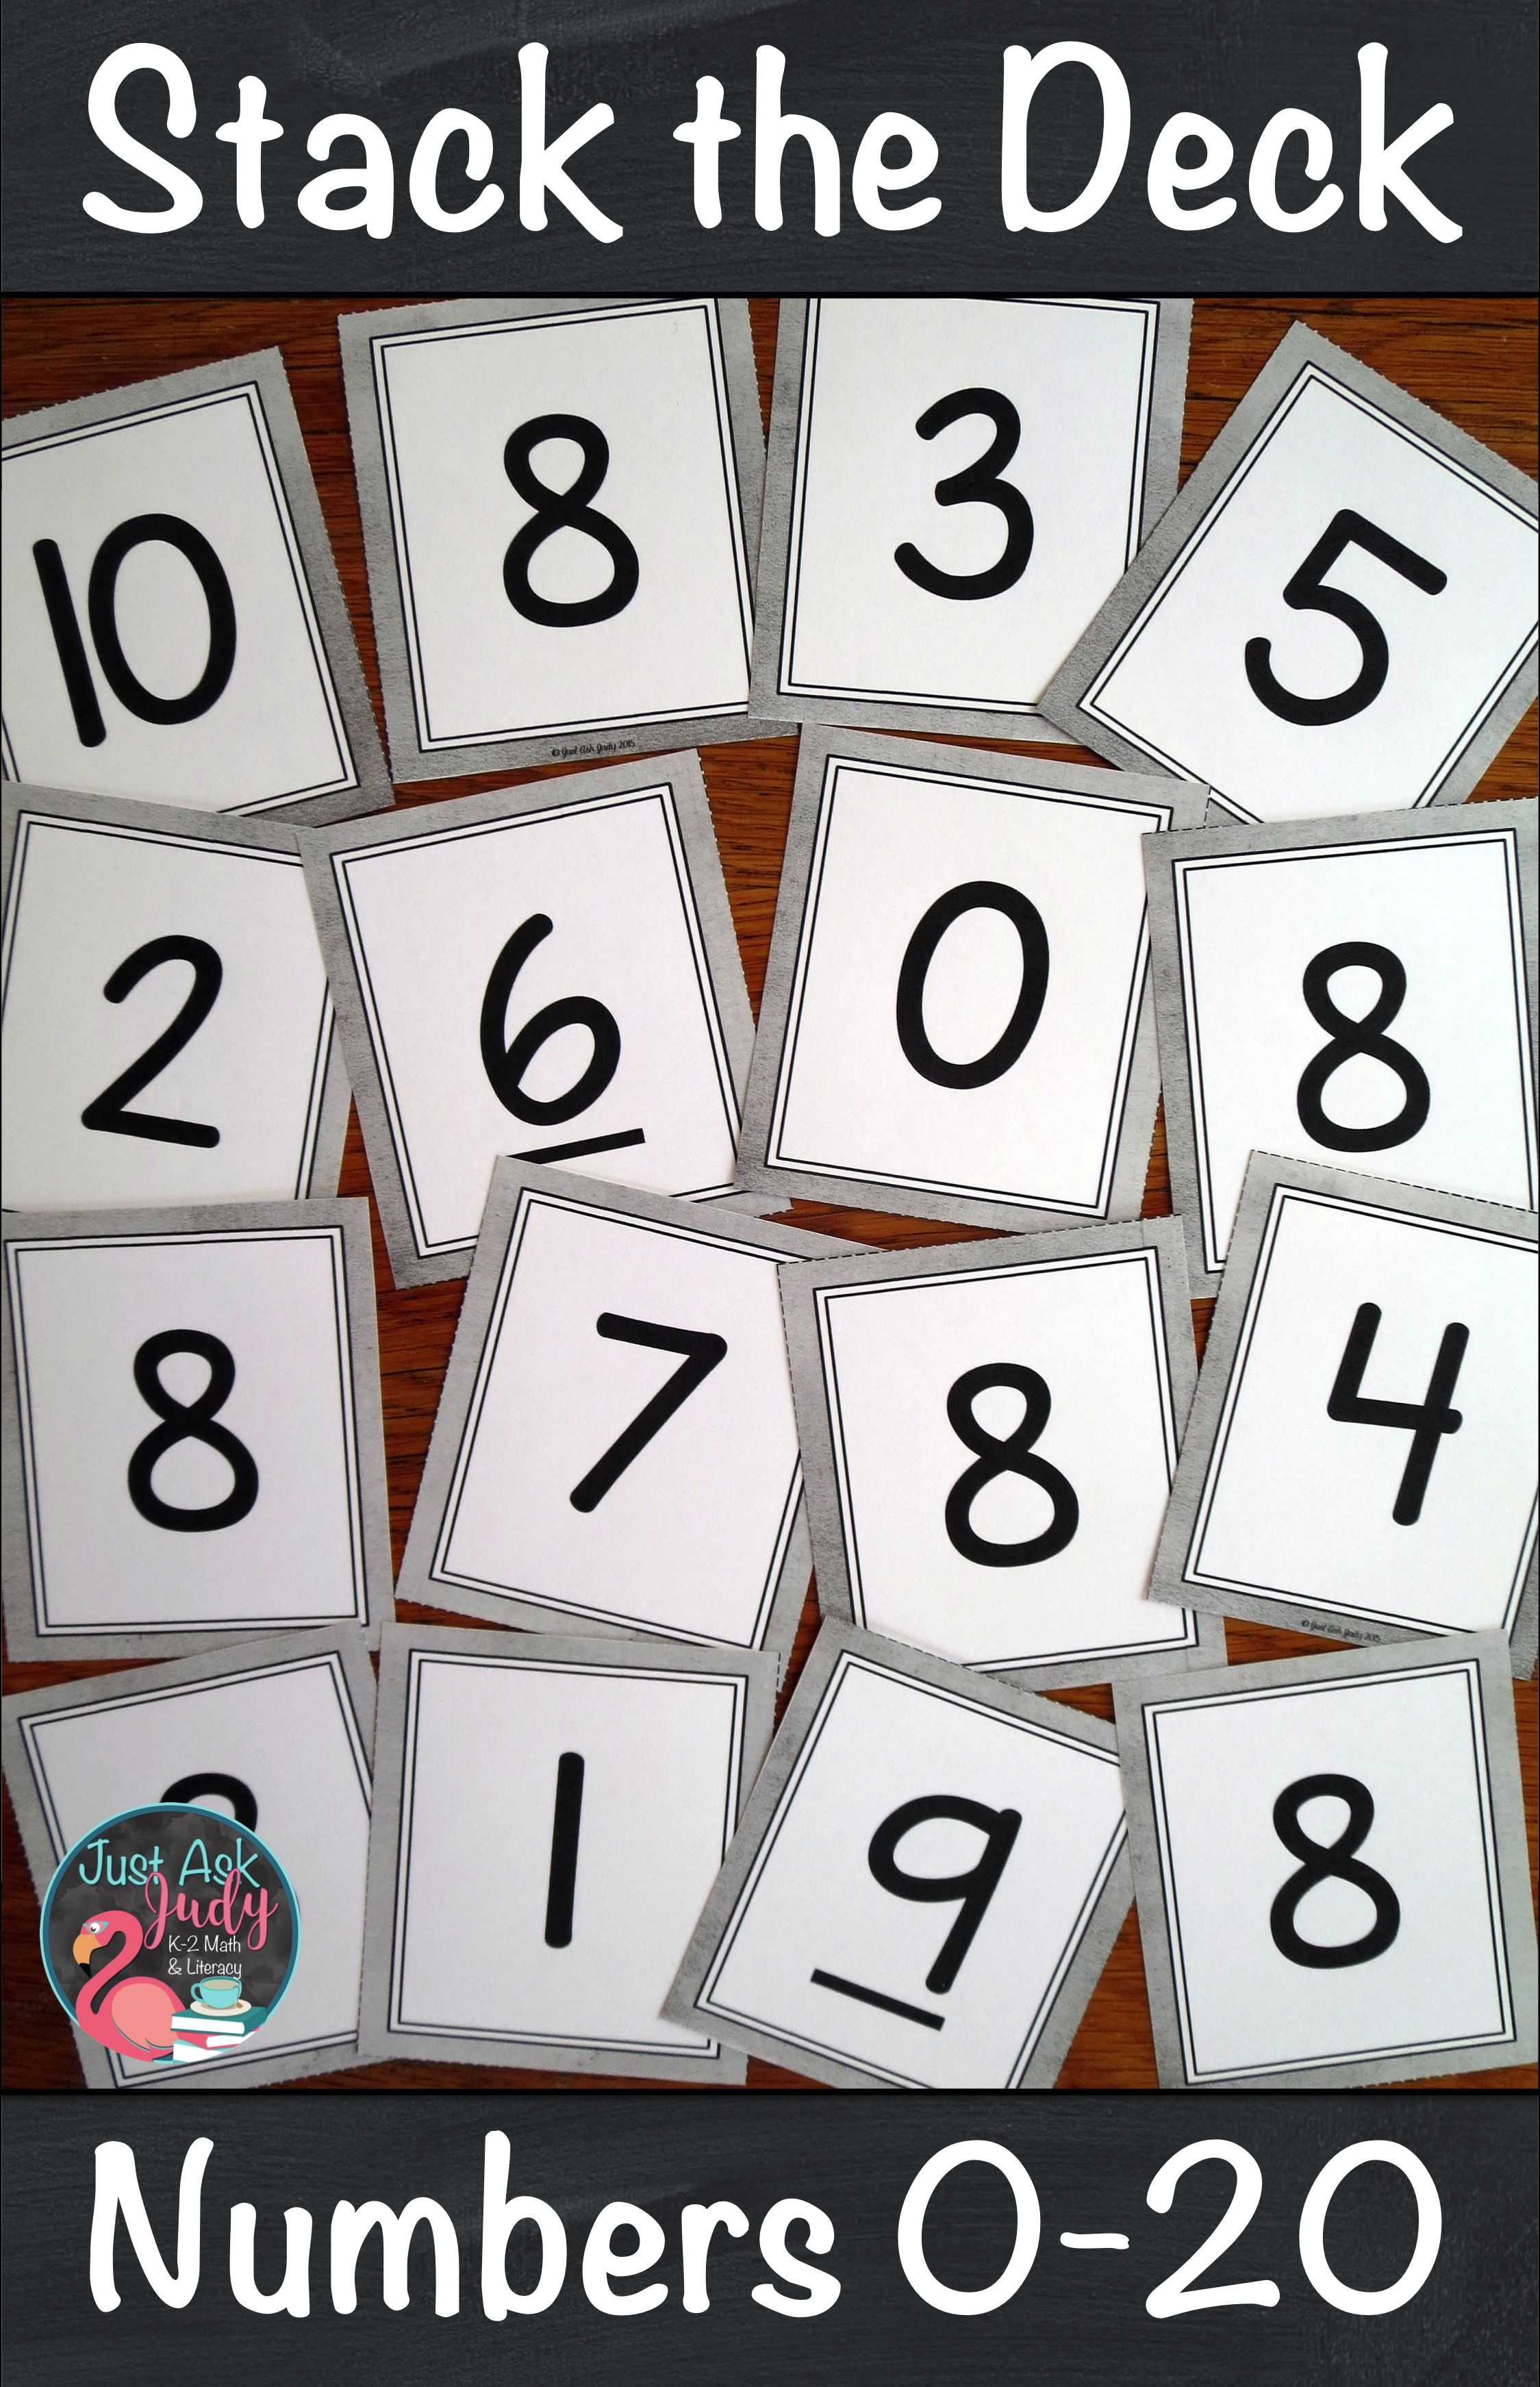 Number Recognition 0-20 Stack the Deck A Flashcard Activity | Just